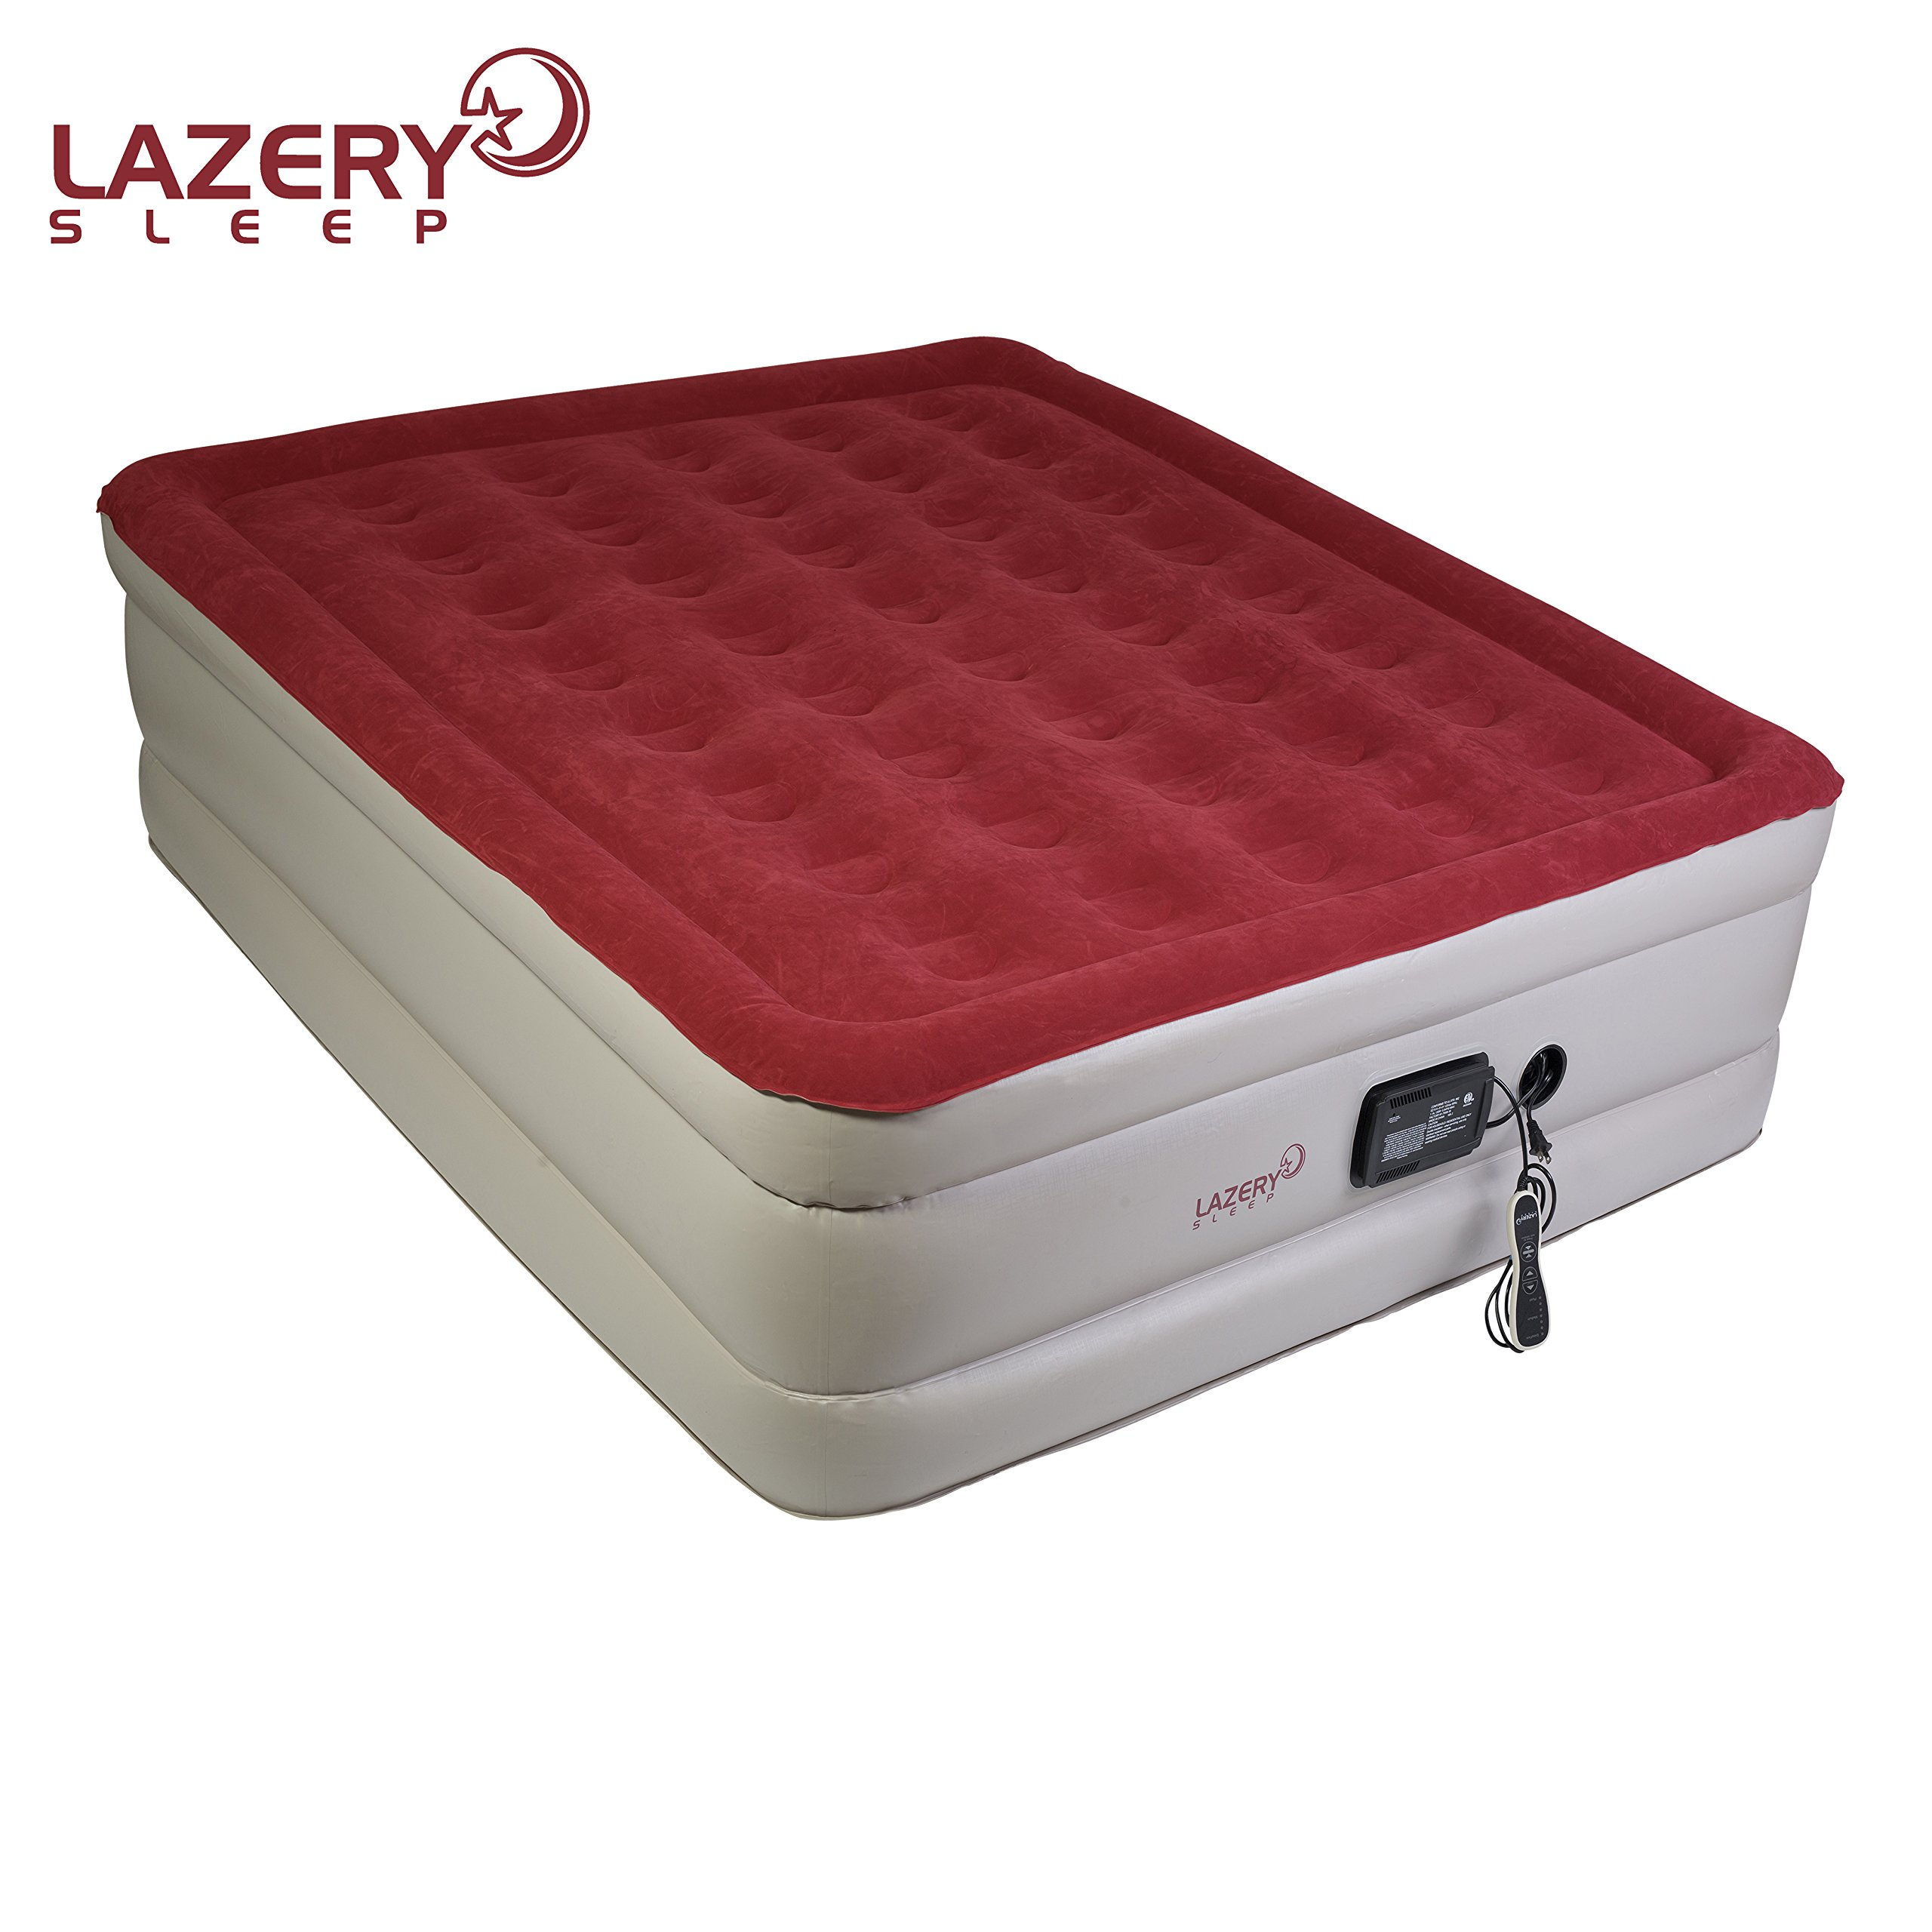 Lazery Sleep Air Mattress – Raised Electric Airbed With Built In Pump & Carry Bag – Fast Inflation, LED Remote Control & 7 Firmness Settings –Queen 78'' x 58'' x 19'' by Lazery Sleep